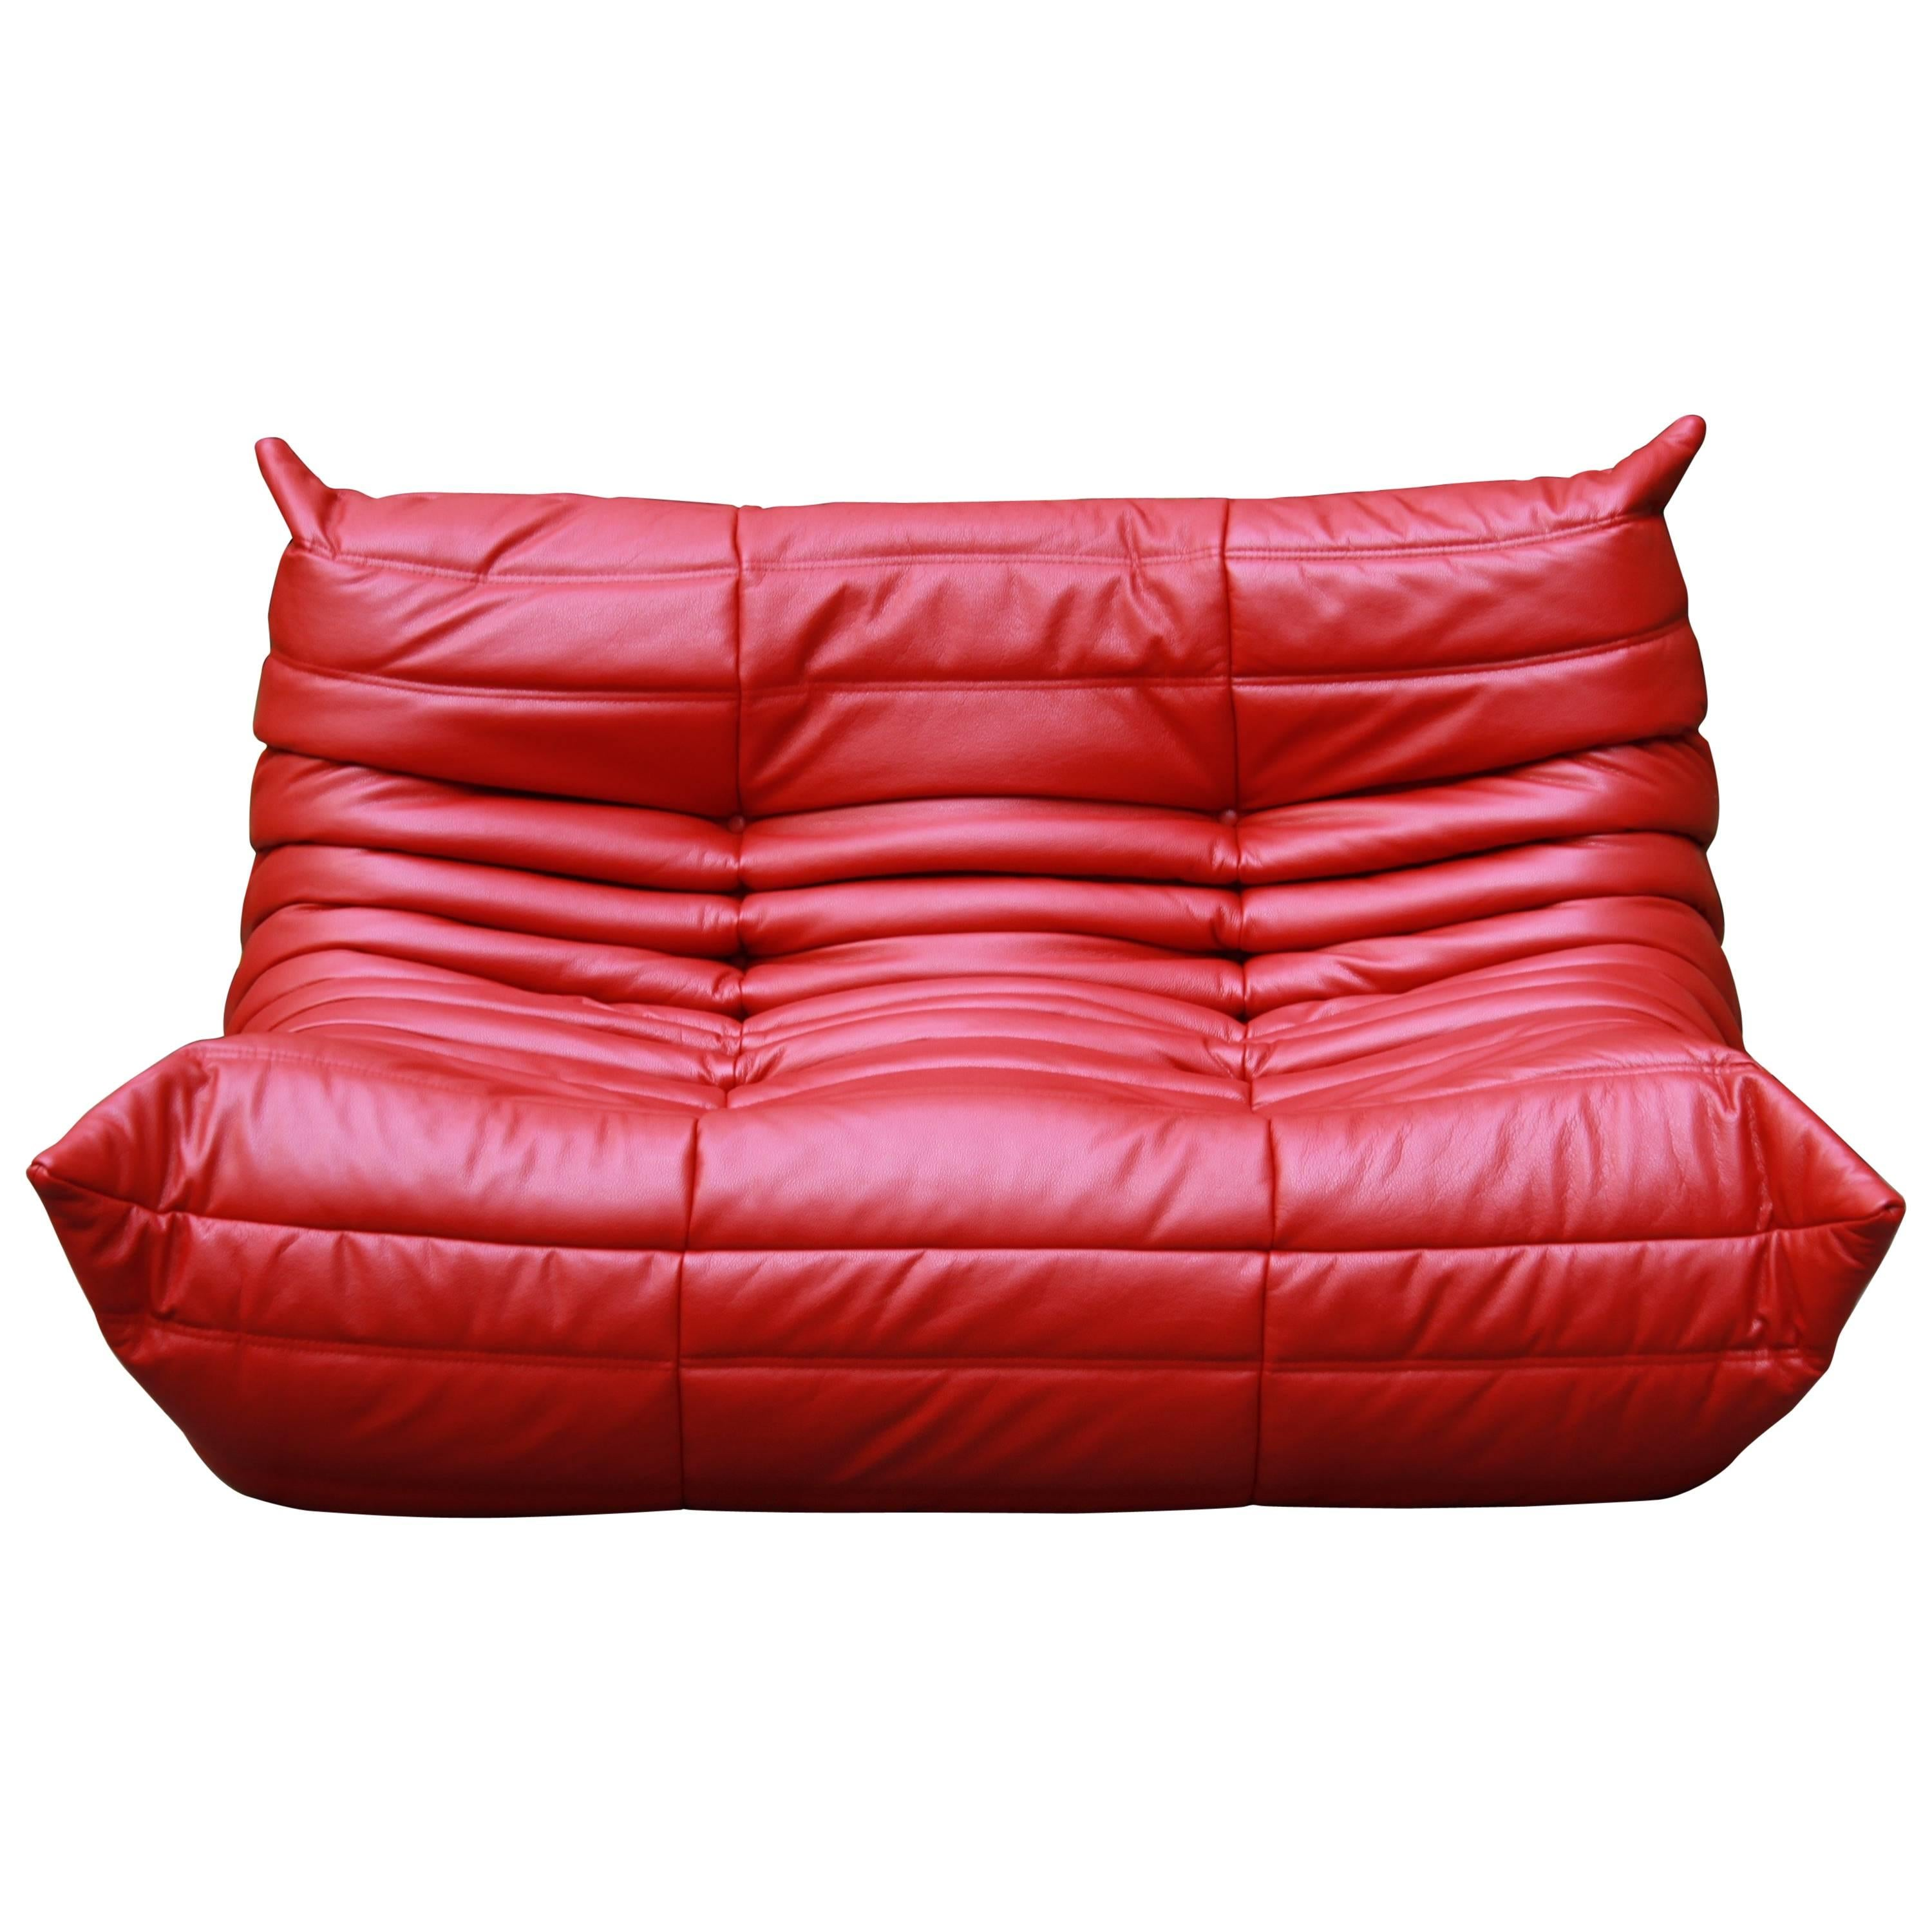 Red Leather Two-Seat Togo Sofa by Michel Ducaroy for Ligne Roset  sc 1 st  1stDibs : togo sectional - Sectionals, Sofas & Couches